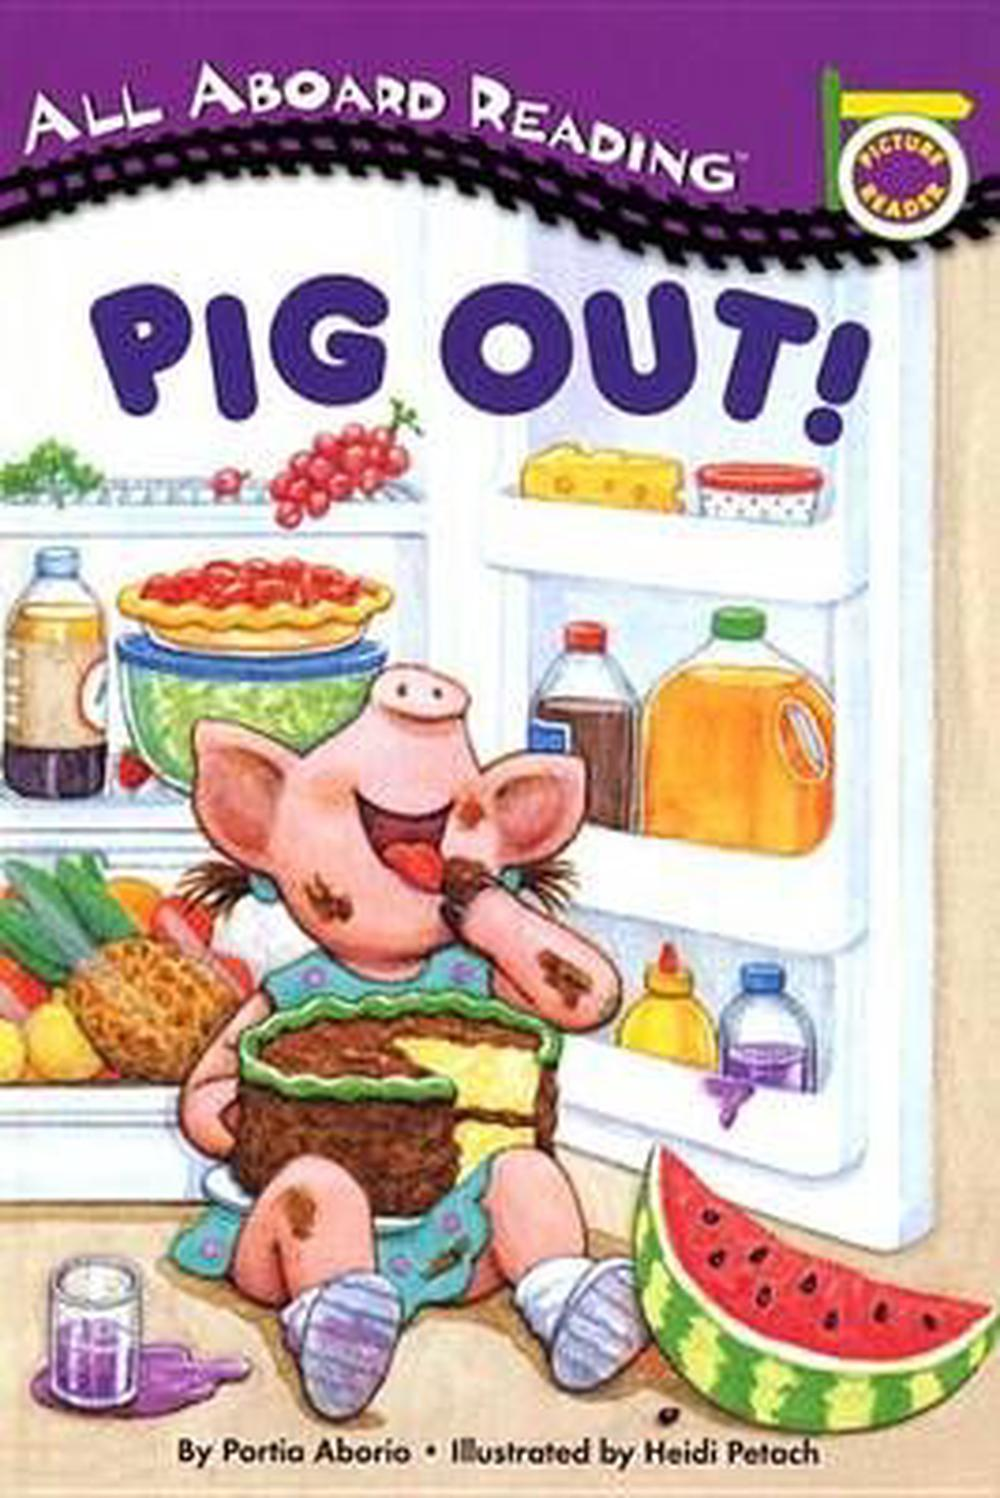 Pig Out! [With 24 Flash Cards] by Portia Aborio (English ...